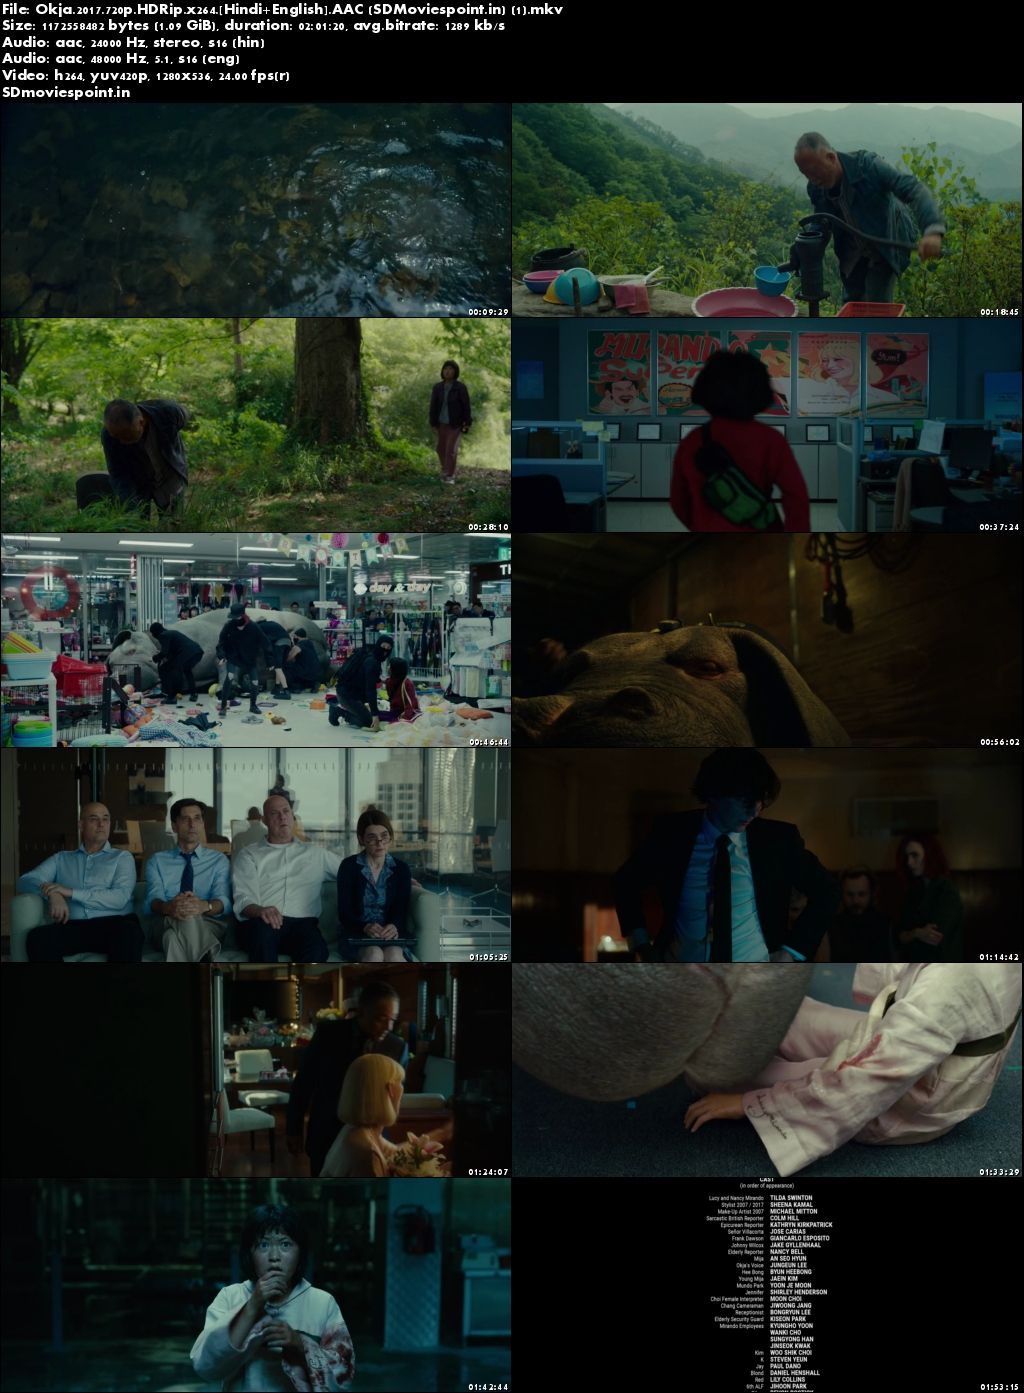 Screen Shots Okja (2017) Full Movie in Hindi Dubbed Download 720p Dual Audio